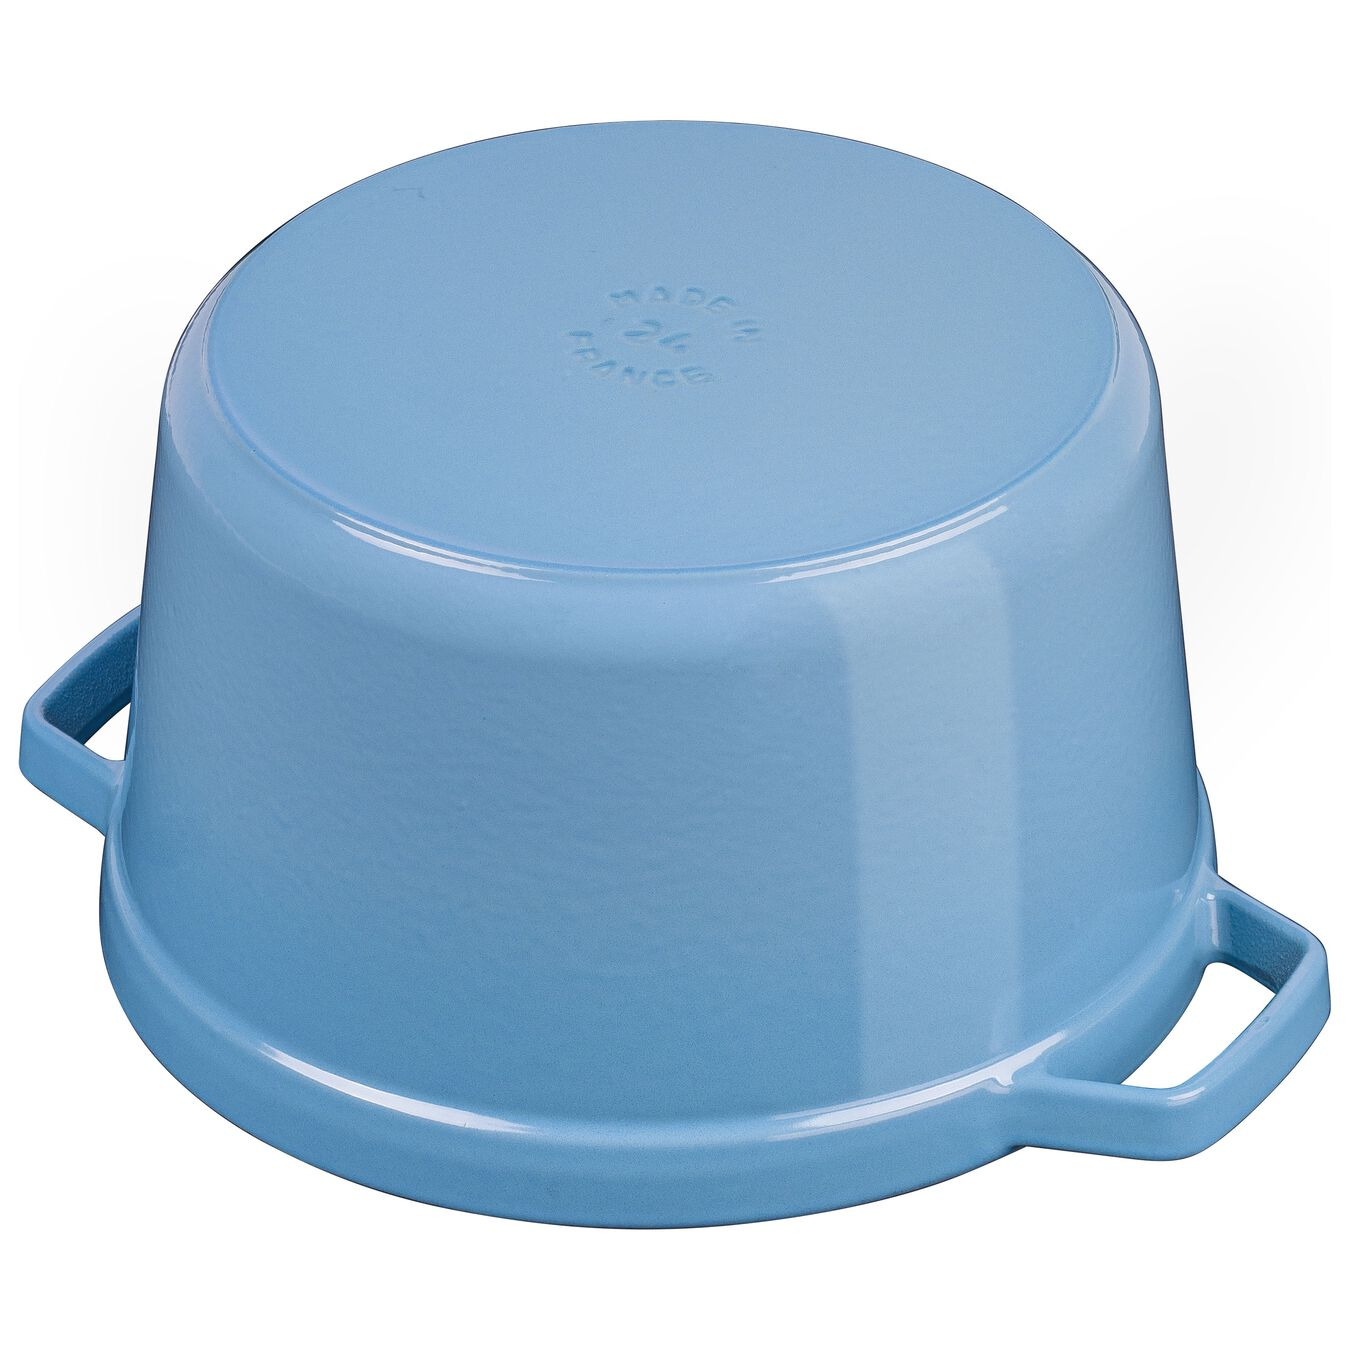 5 qt, round, Cocotte, ice-blue - Visual Imperfections,,large 4